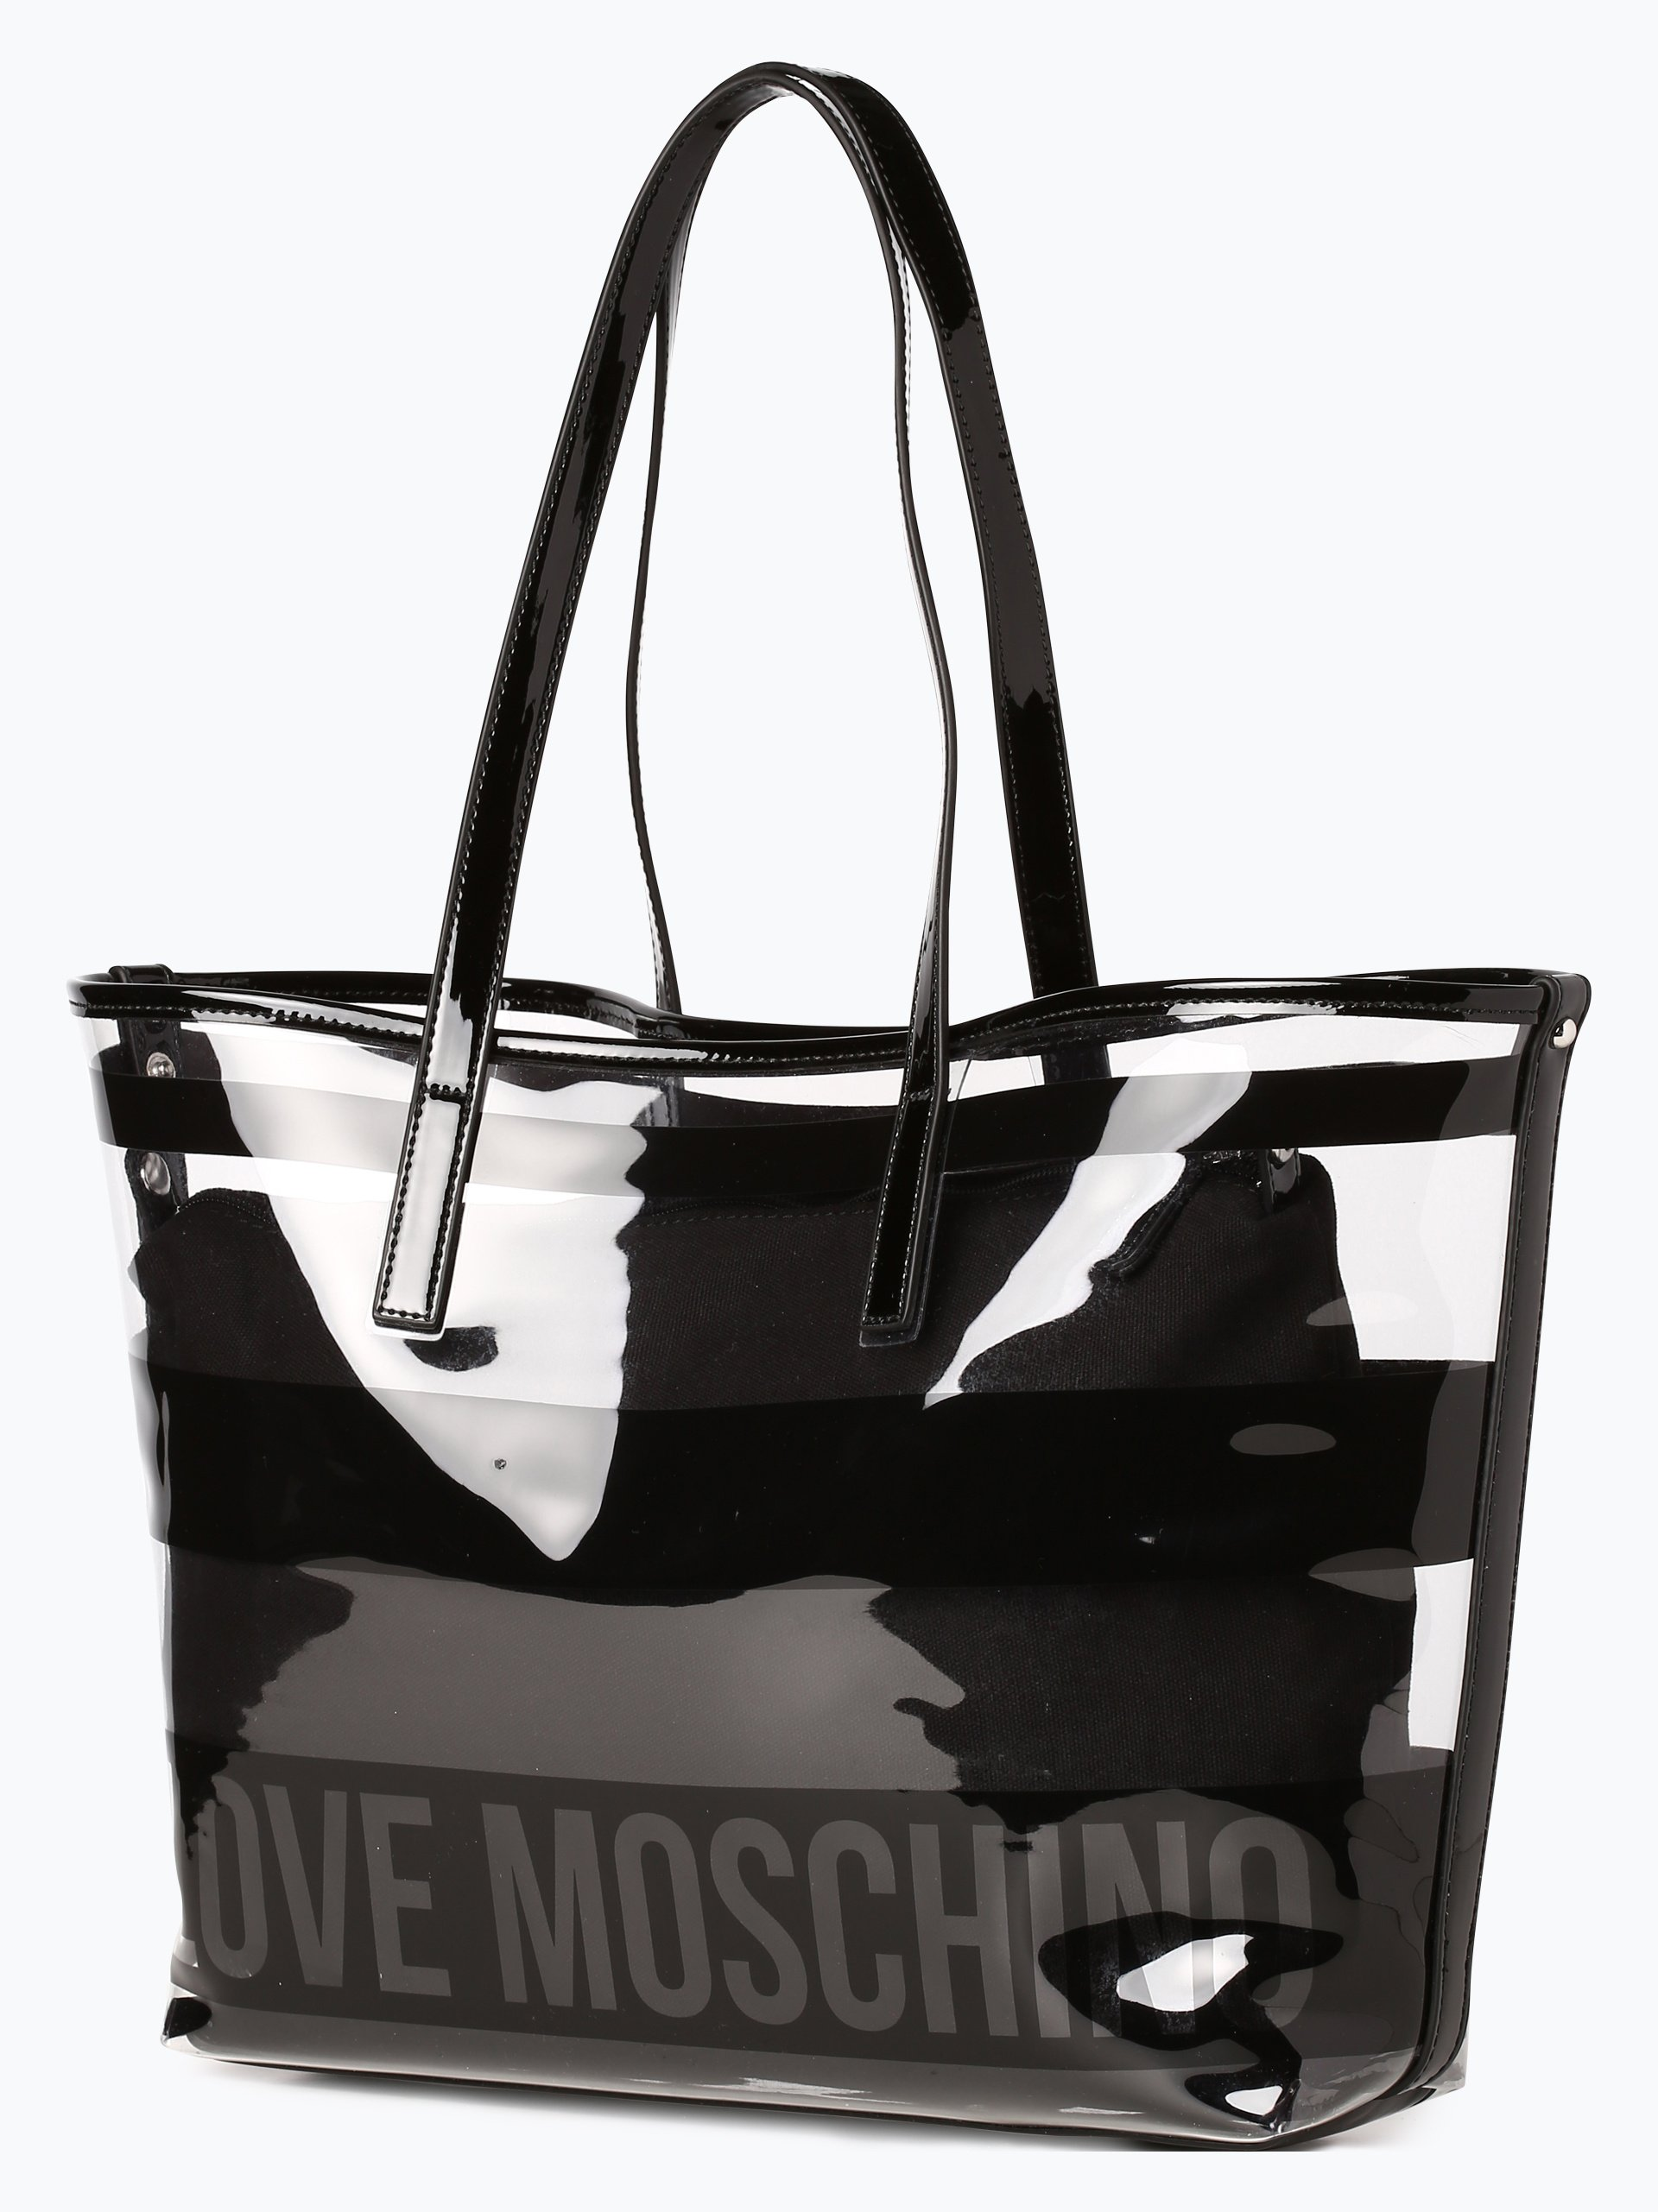 love moschino damen shopper schwarz gemustert online kaufen vangraaf com. Black Bedroom Furniture Sets. Home Design Ideas